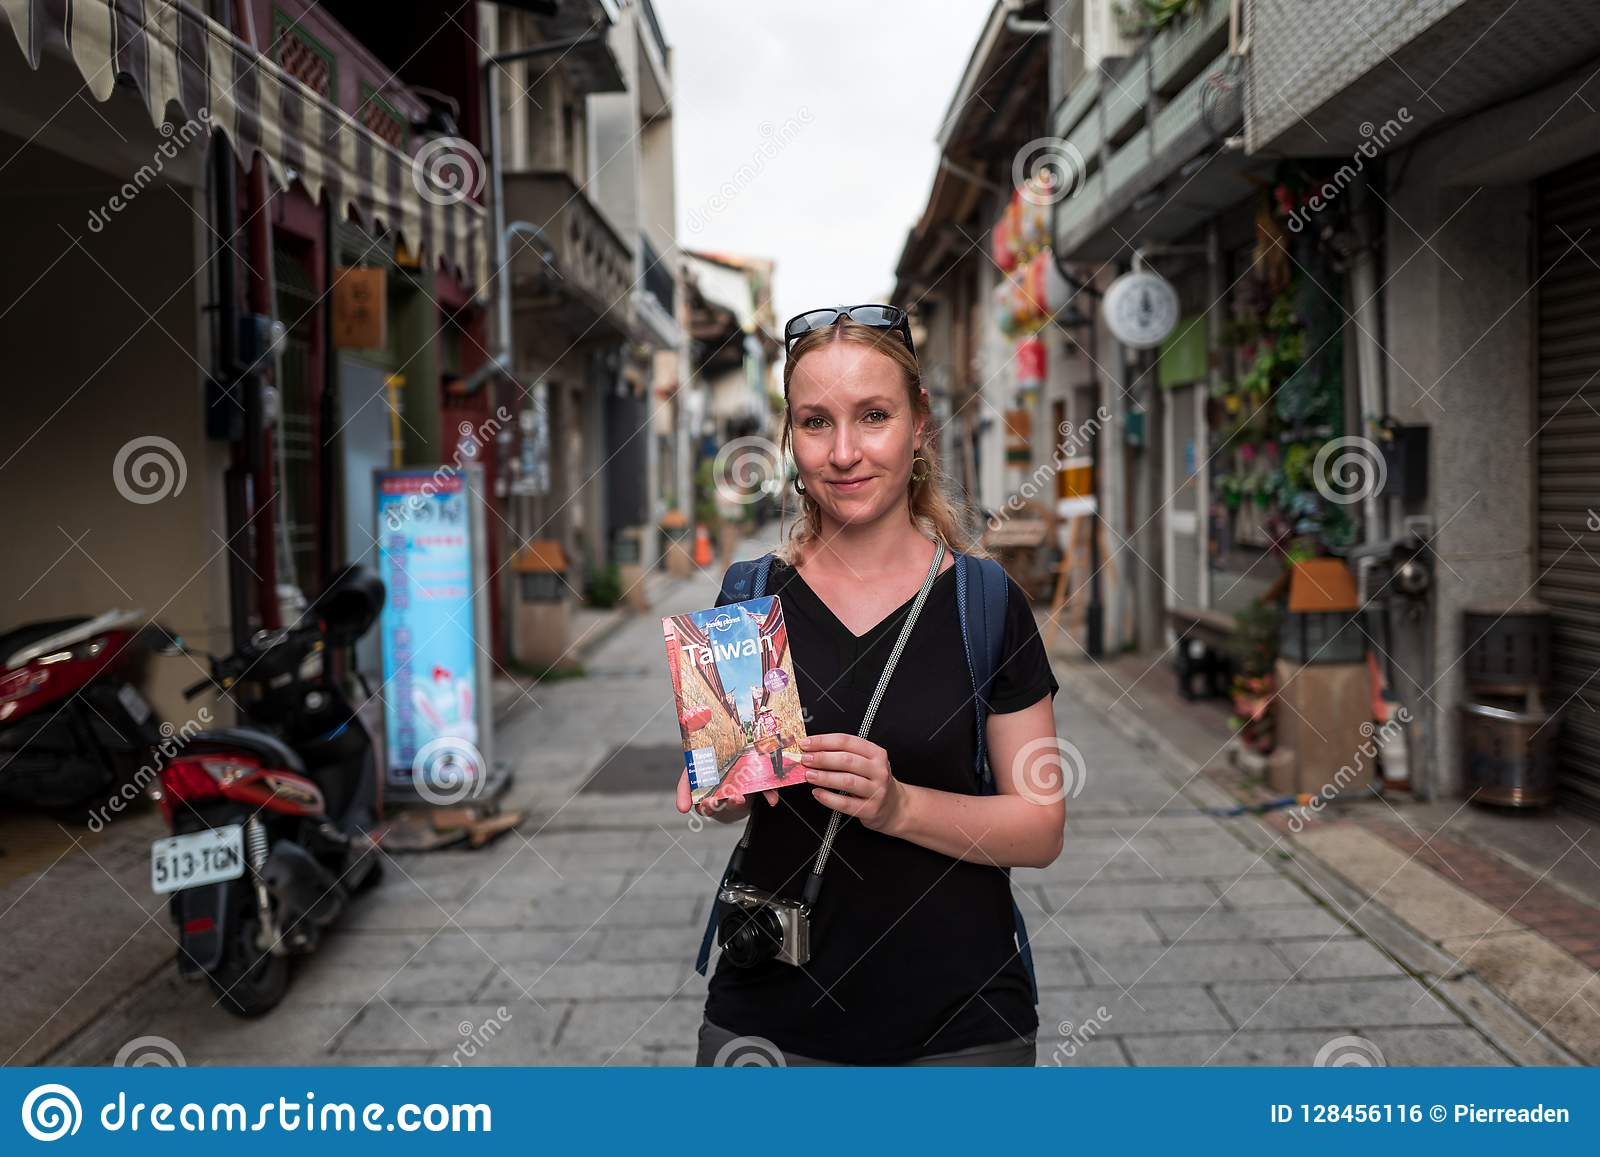 3d2n tainan travel guide explore the historical tainan   gogo.